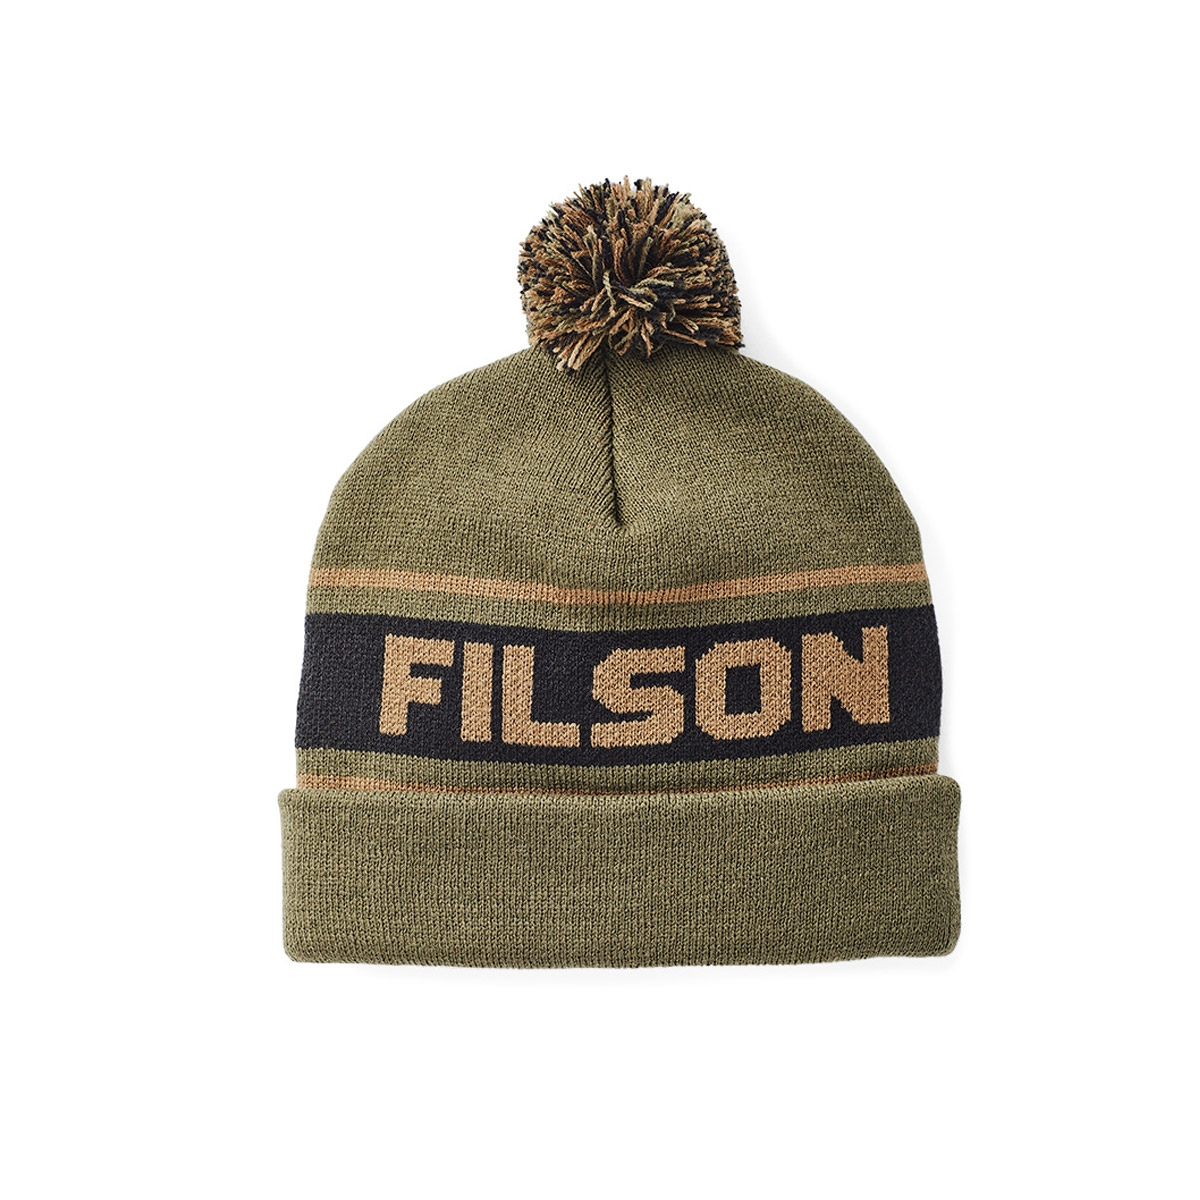 Filson Acrylic Logo Beanie Army Green, lightweight and quick-drying, ideal for rain and snow